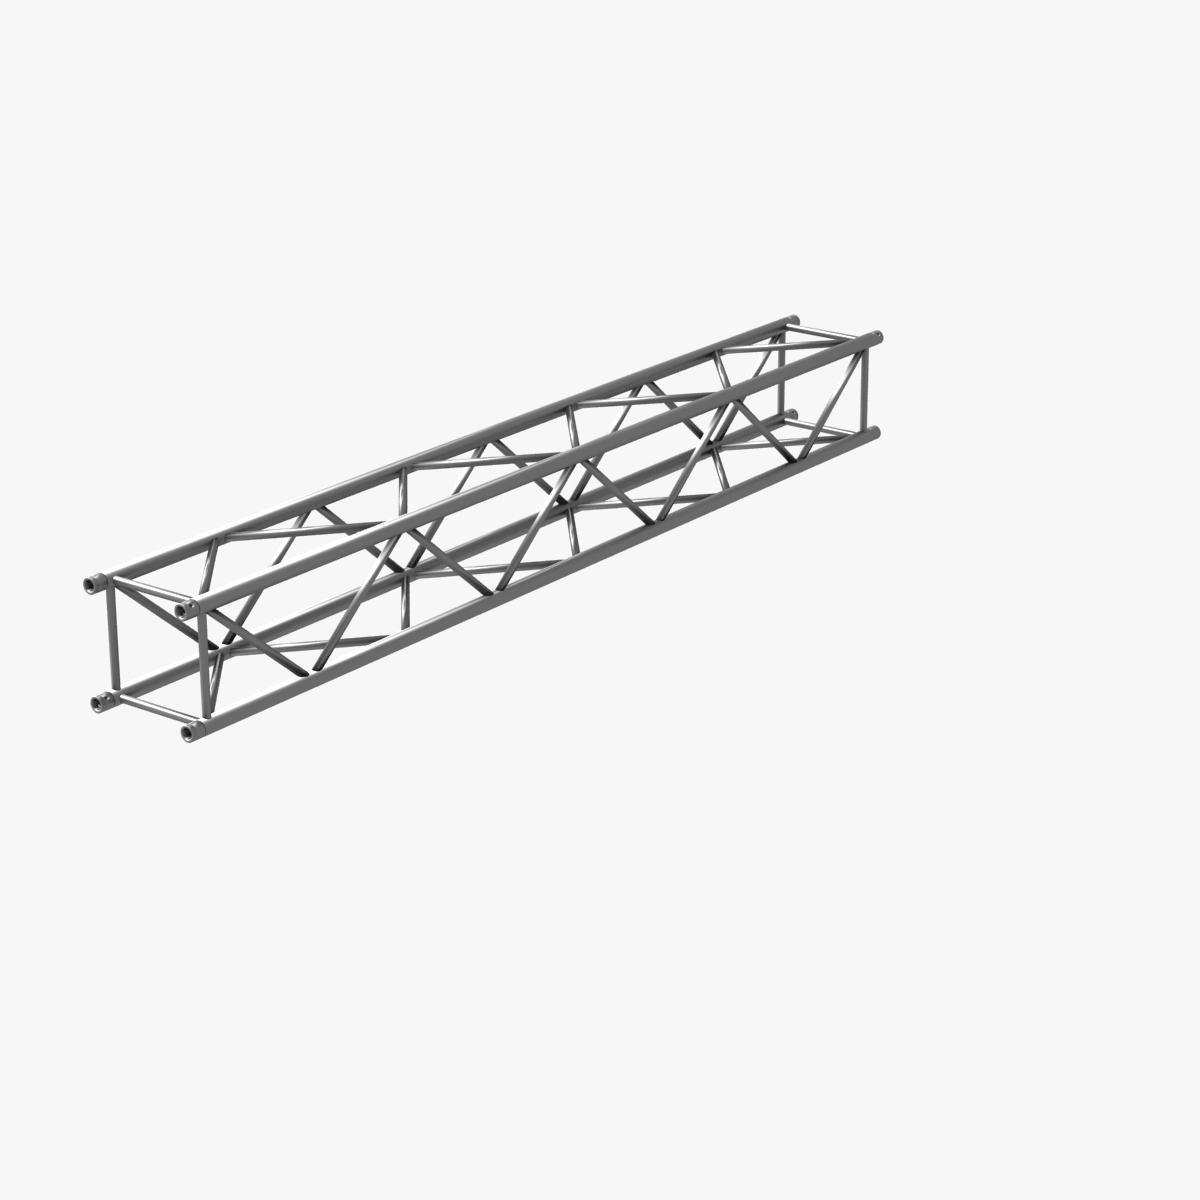 big square truss (collection 10 modular pieces) 3d model 3ds dxf fbx c4d dae  268554